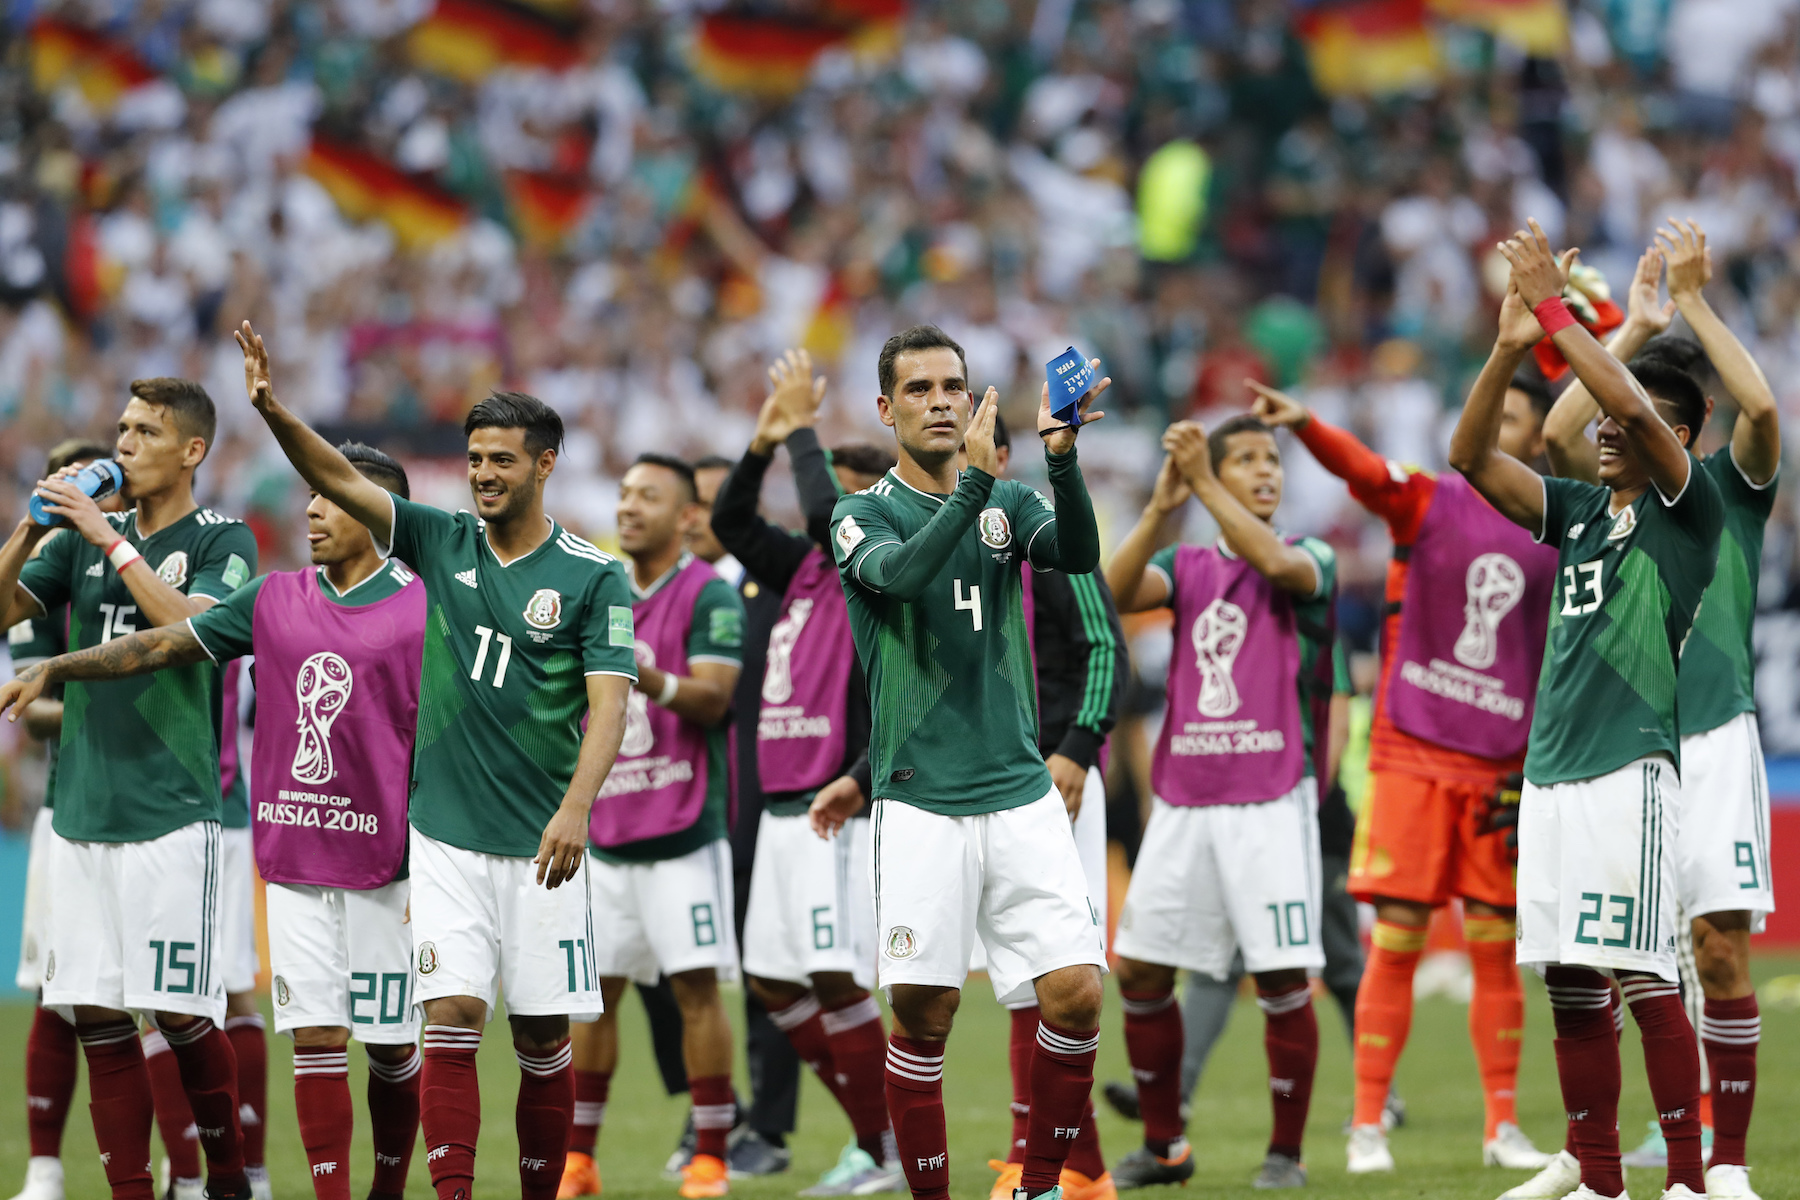 <div class='meta'><div class='origin-logo' data-origin='AP'></div><span class='caption-text' data-credit='AP Photo/Antonio Calanni'>Mexico's Rafael Marquez, center and his teammates celebrate after winning the group F match between Germany and Mexico at the 2018 soccer World Cup.</span></div>